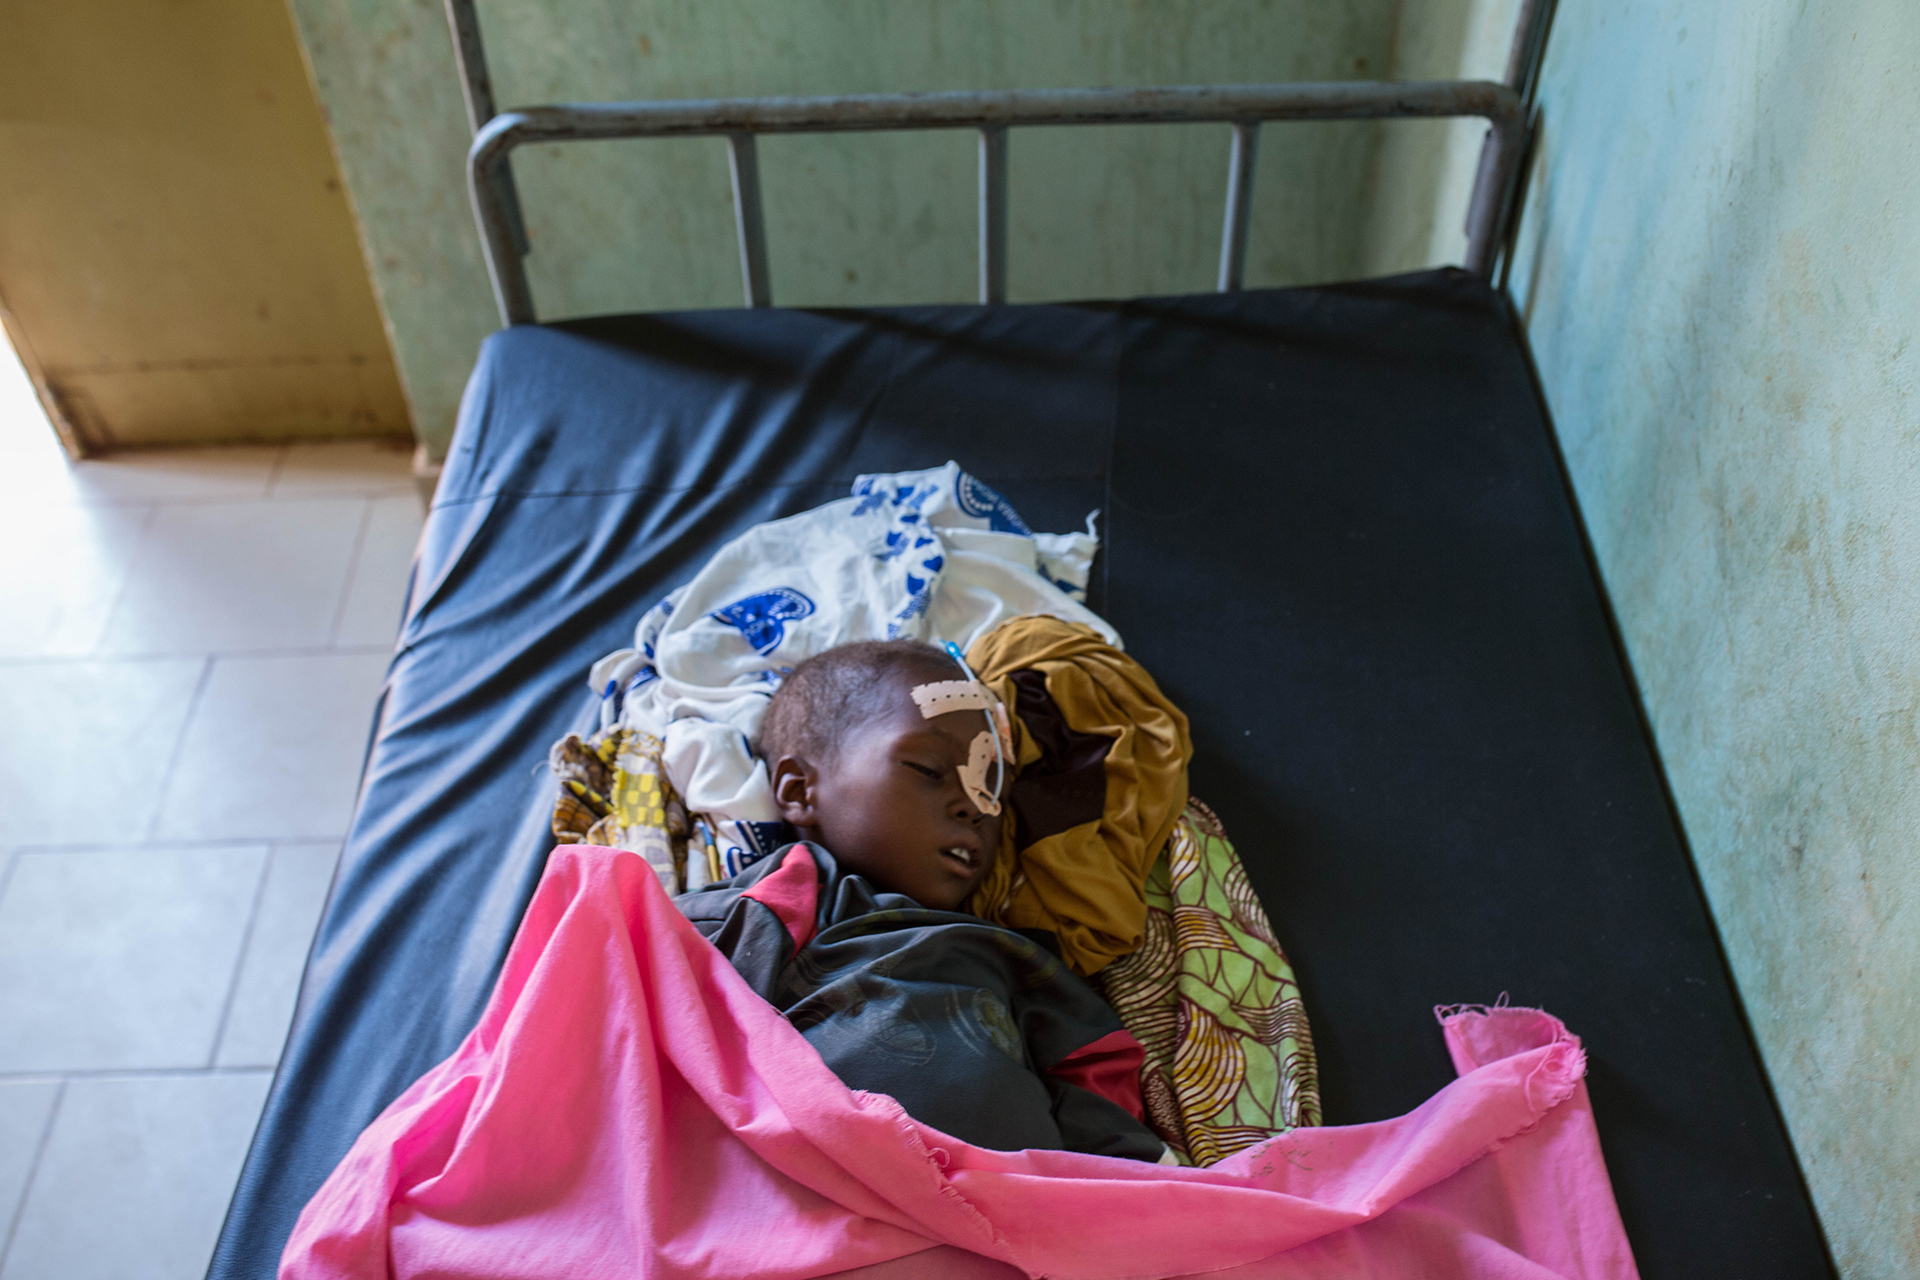 A young child with medical equipment on a bed